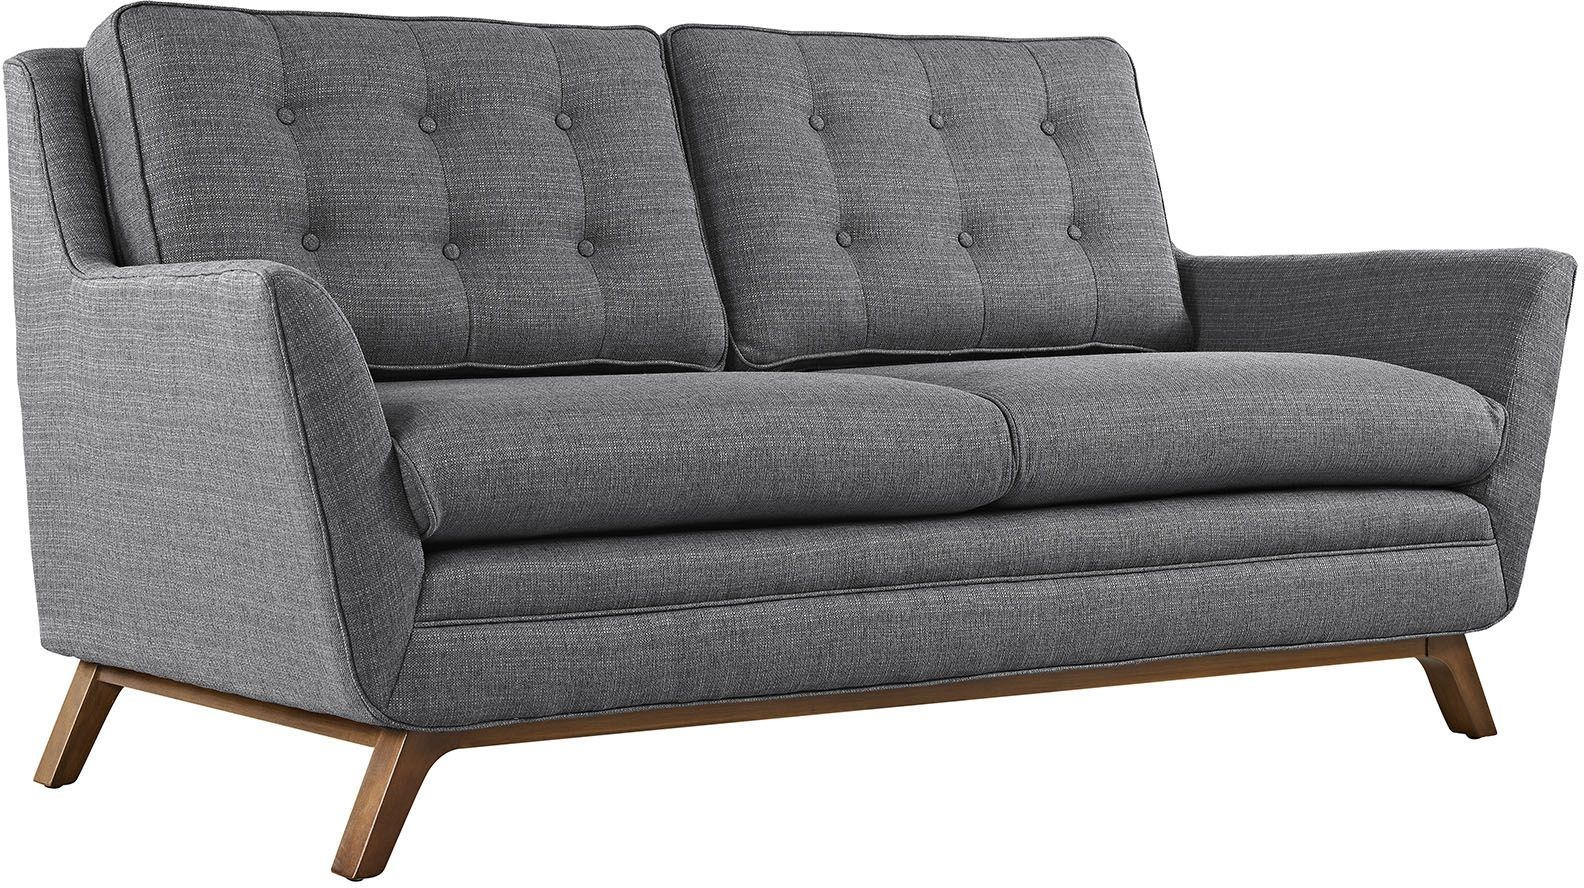 Beguile Gray Upholstered Loveseat From Renegade Coleman Furniture